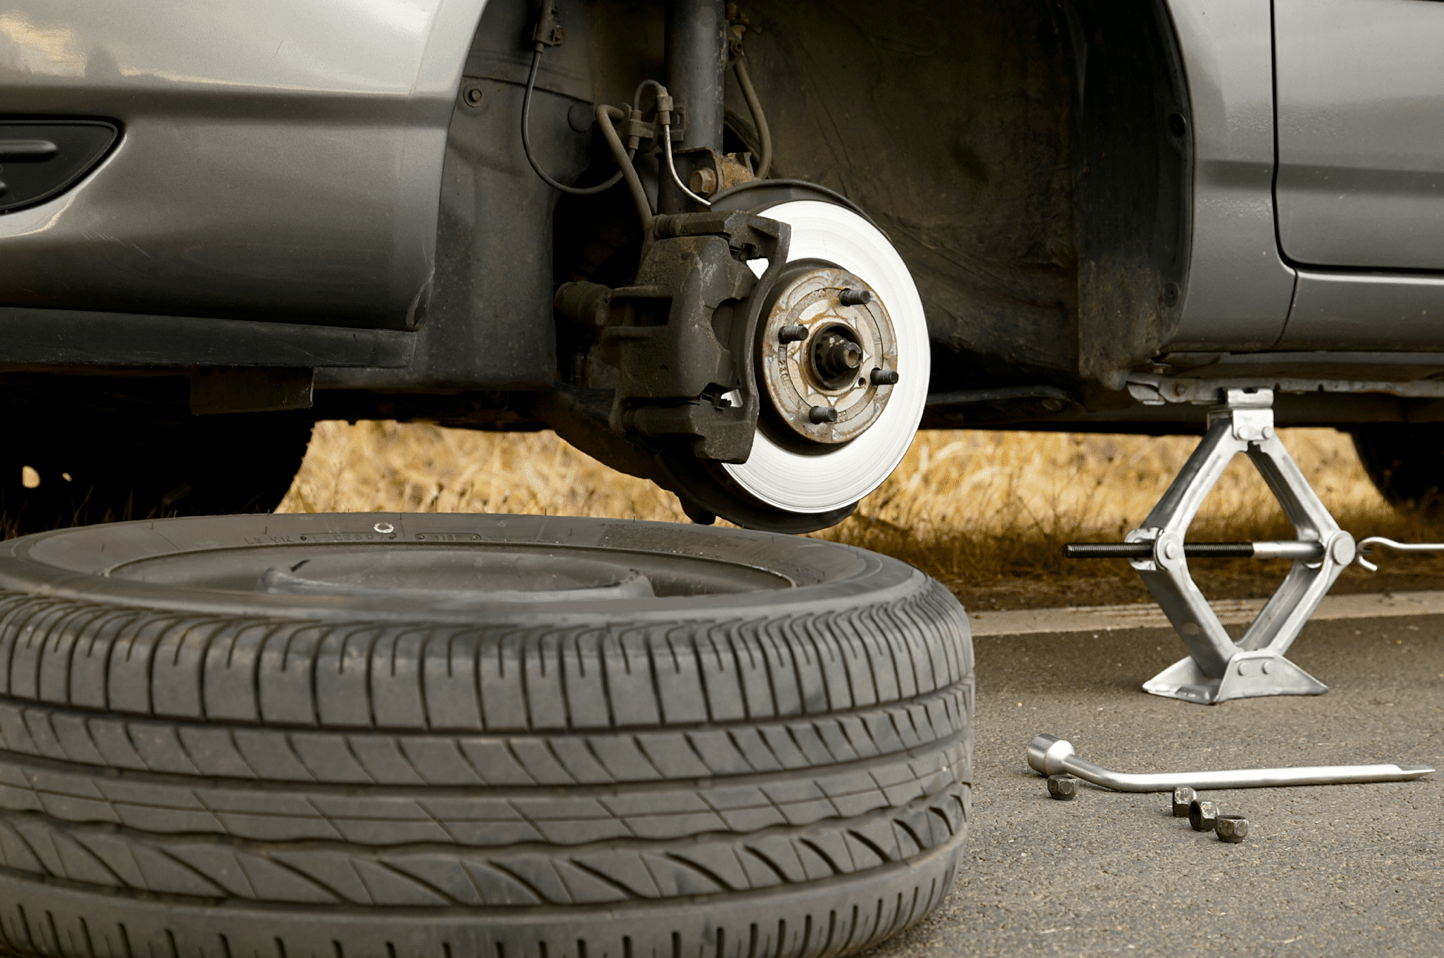 How To Change A Tire In A Few Minutes Step By Step